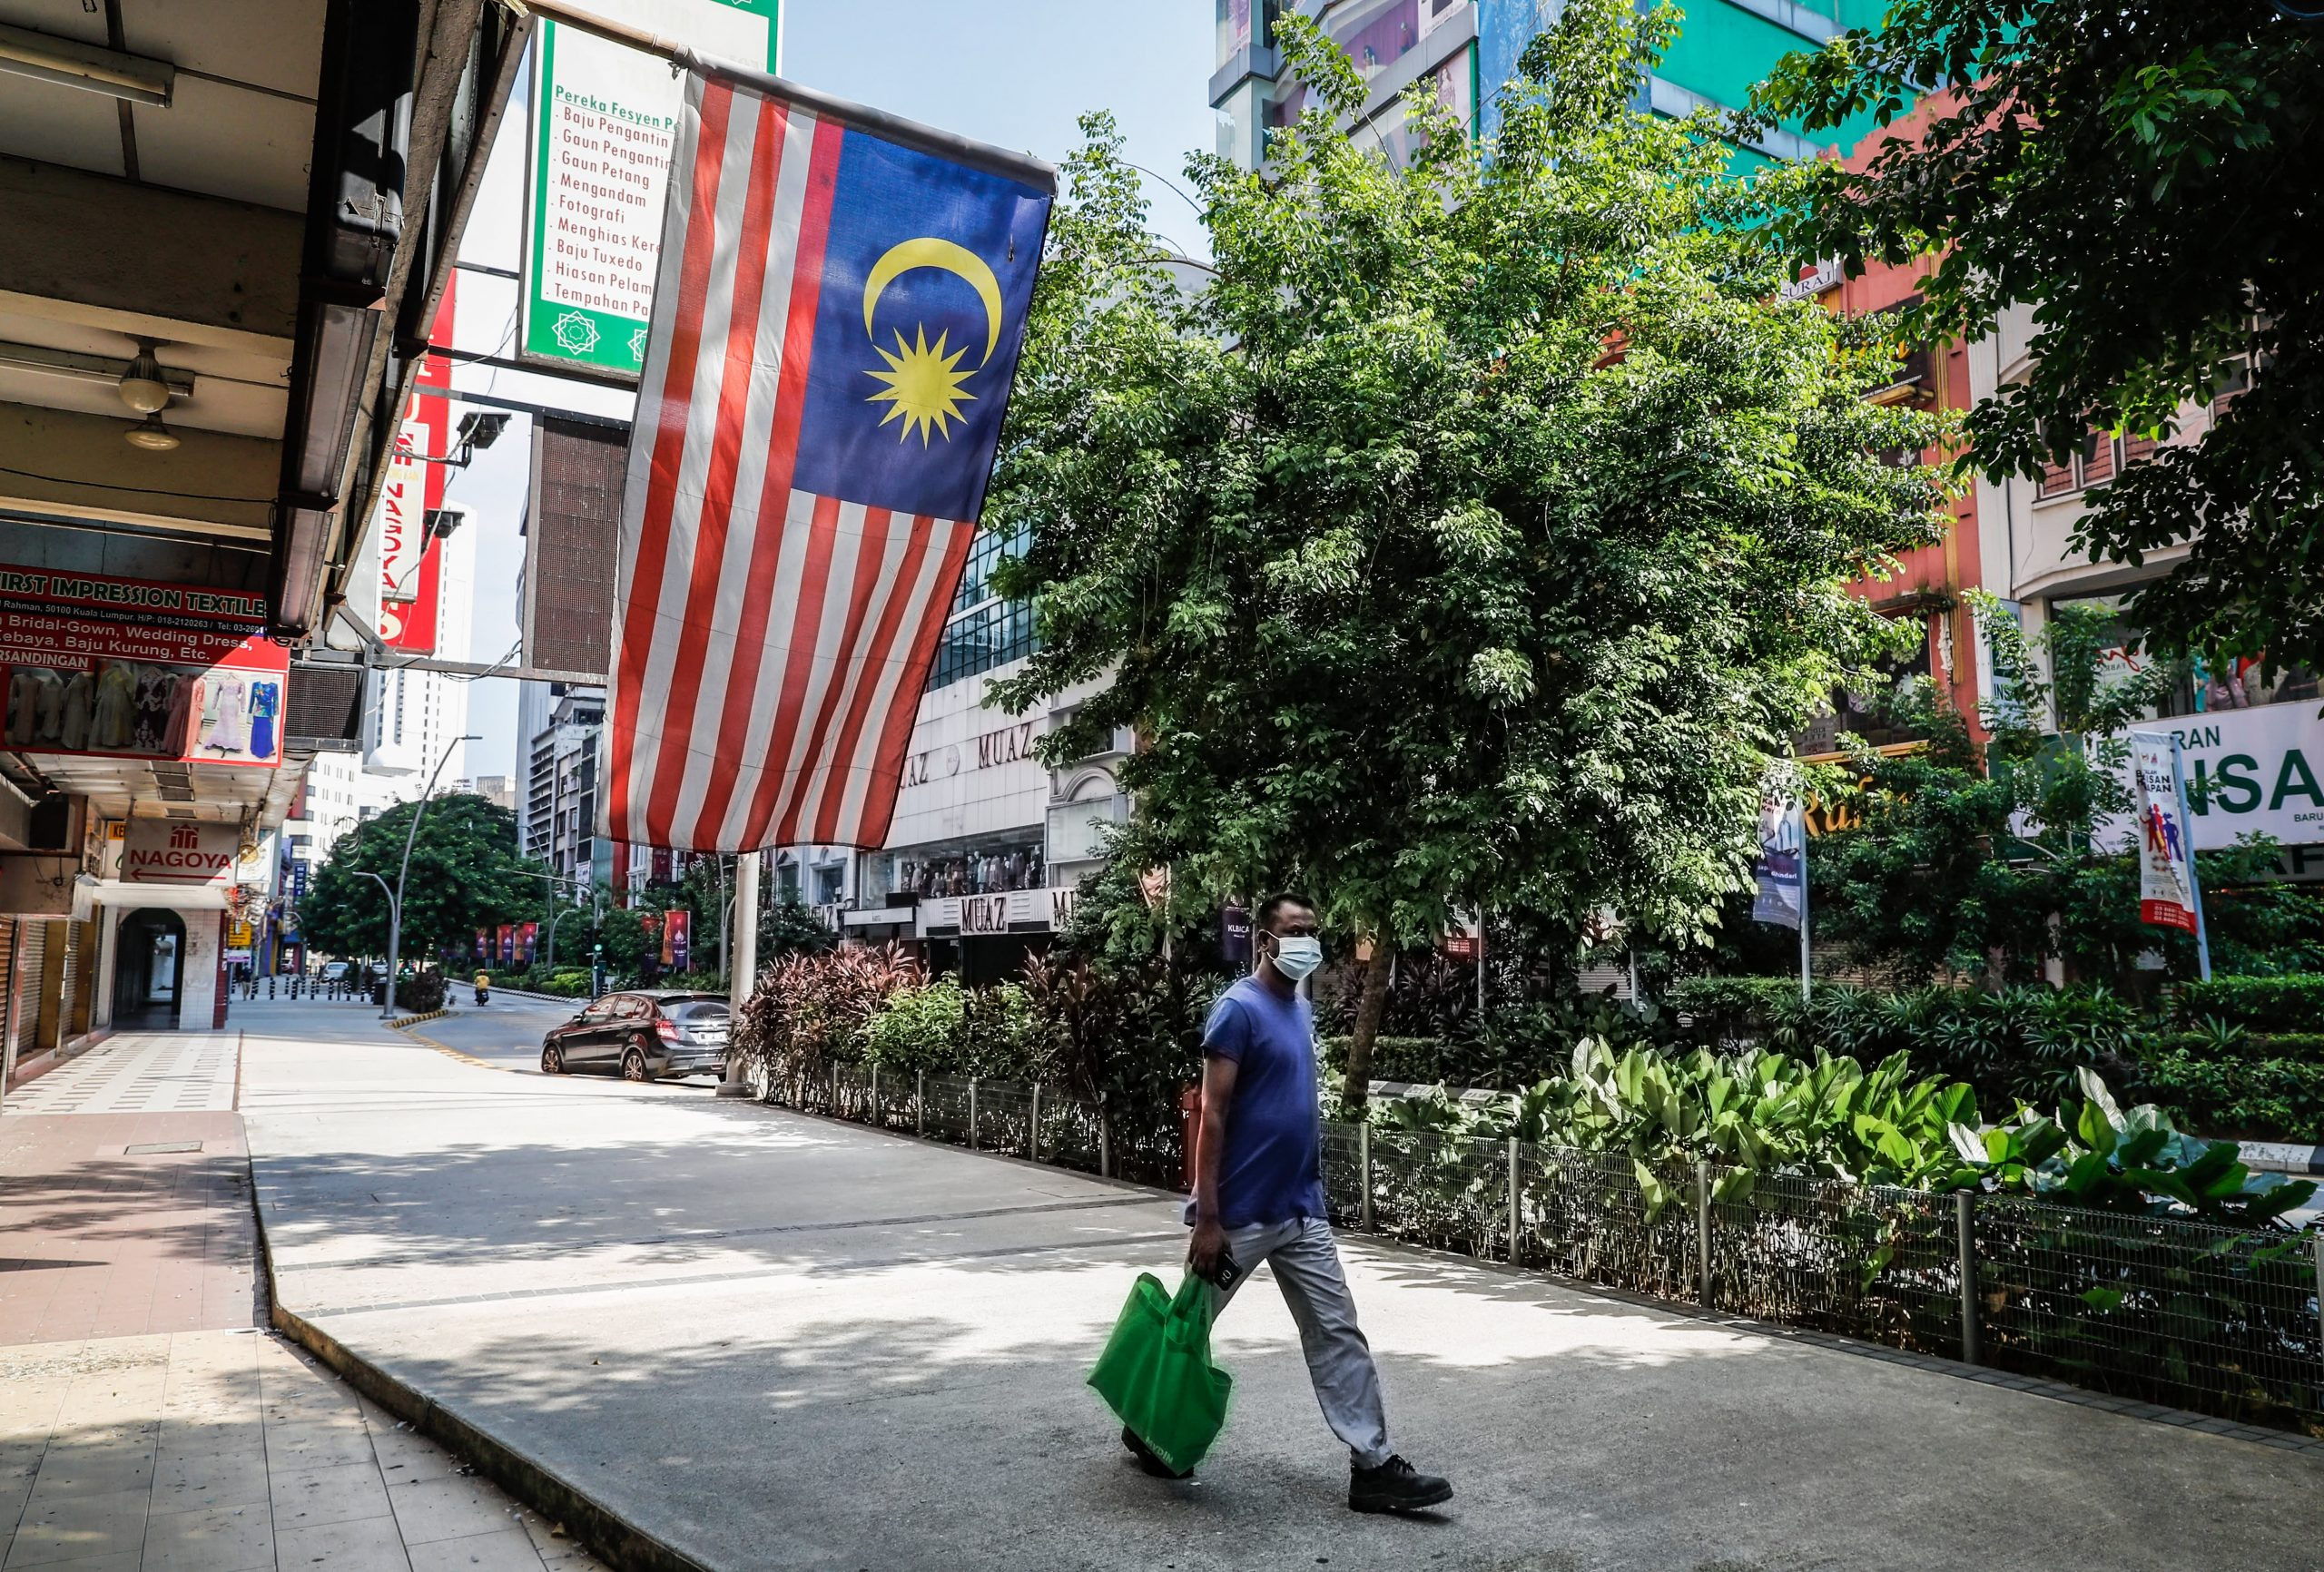 Malaysia's daily new Covid cases per million people is now one of the highest globally